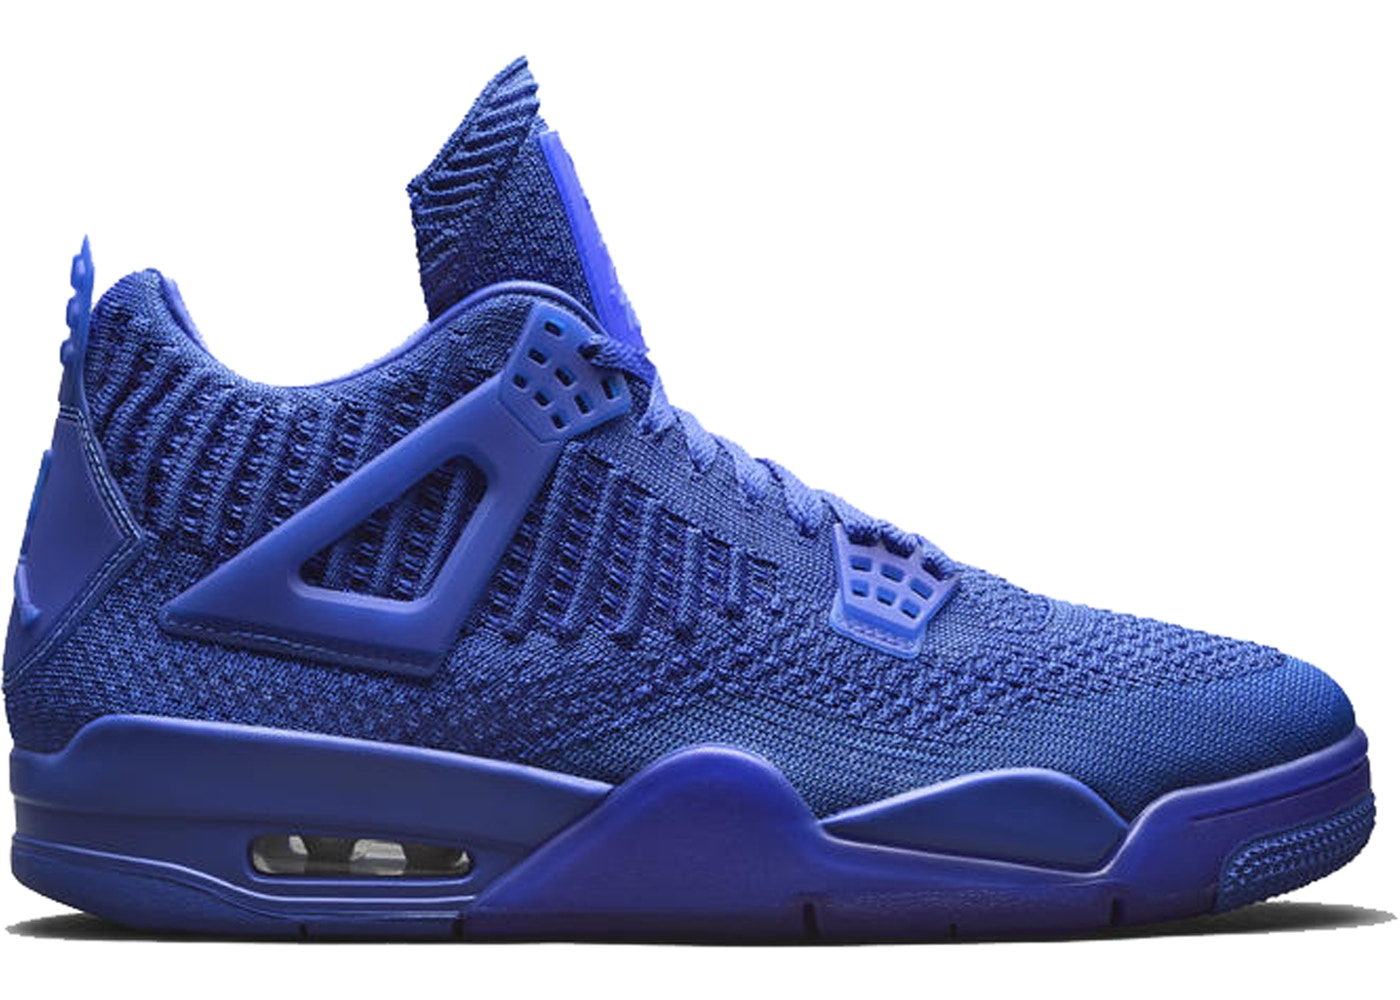 5e6fd4af638f1 Now Available: Air Jordan 4 Retro Flyknit